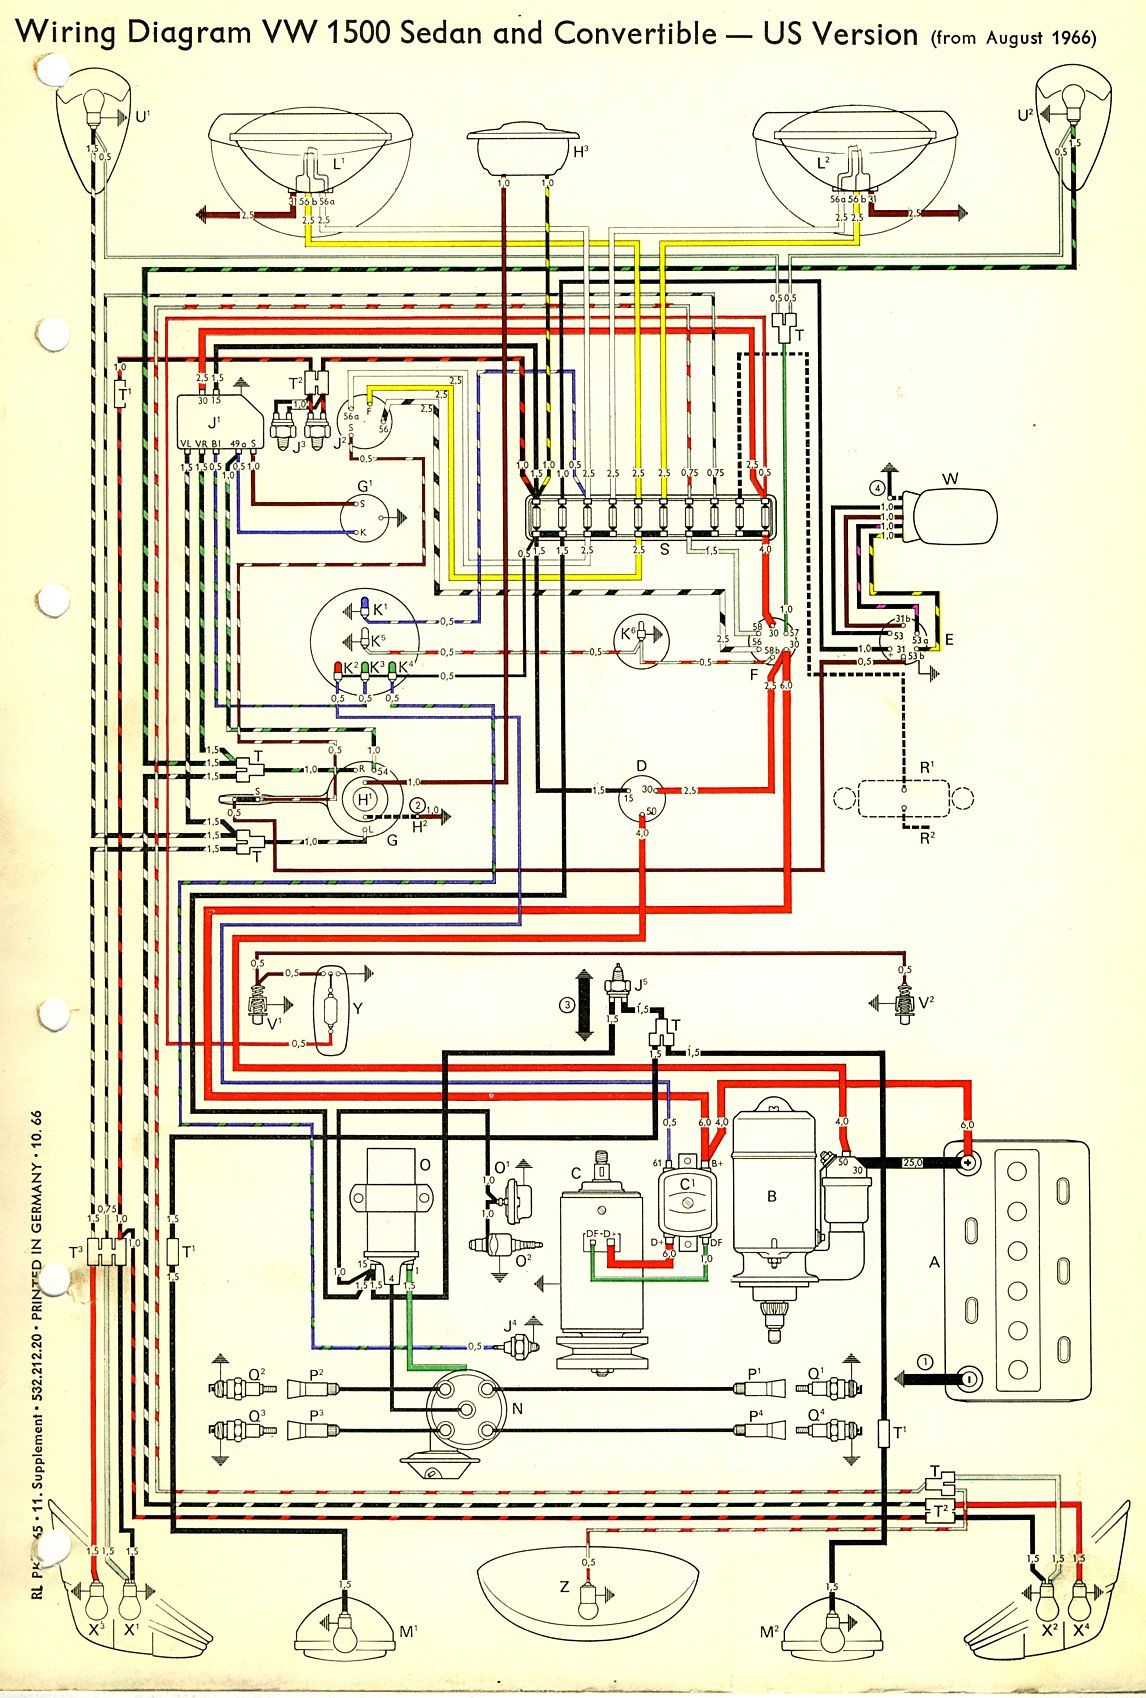 1adf990c0efb617c789fdd21338448b0 1967 beetle wiring diagram (usa) thegoldenbug com best 1967 vw 1971 vw bus wiring diagram at highcare.asia